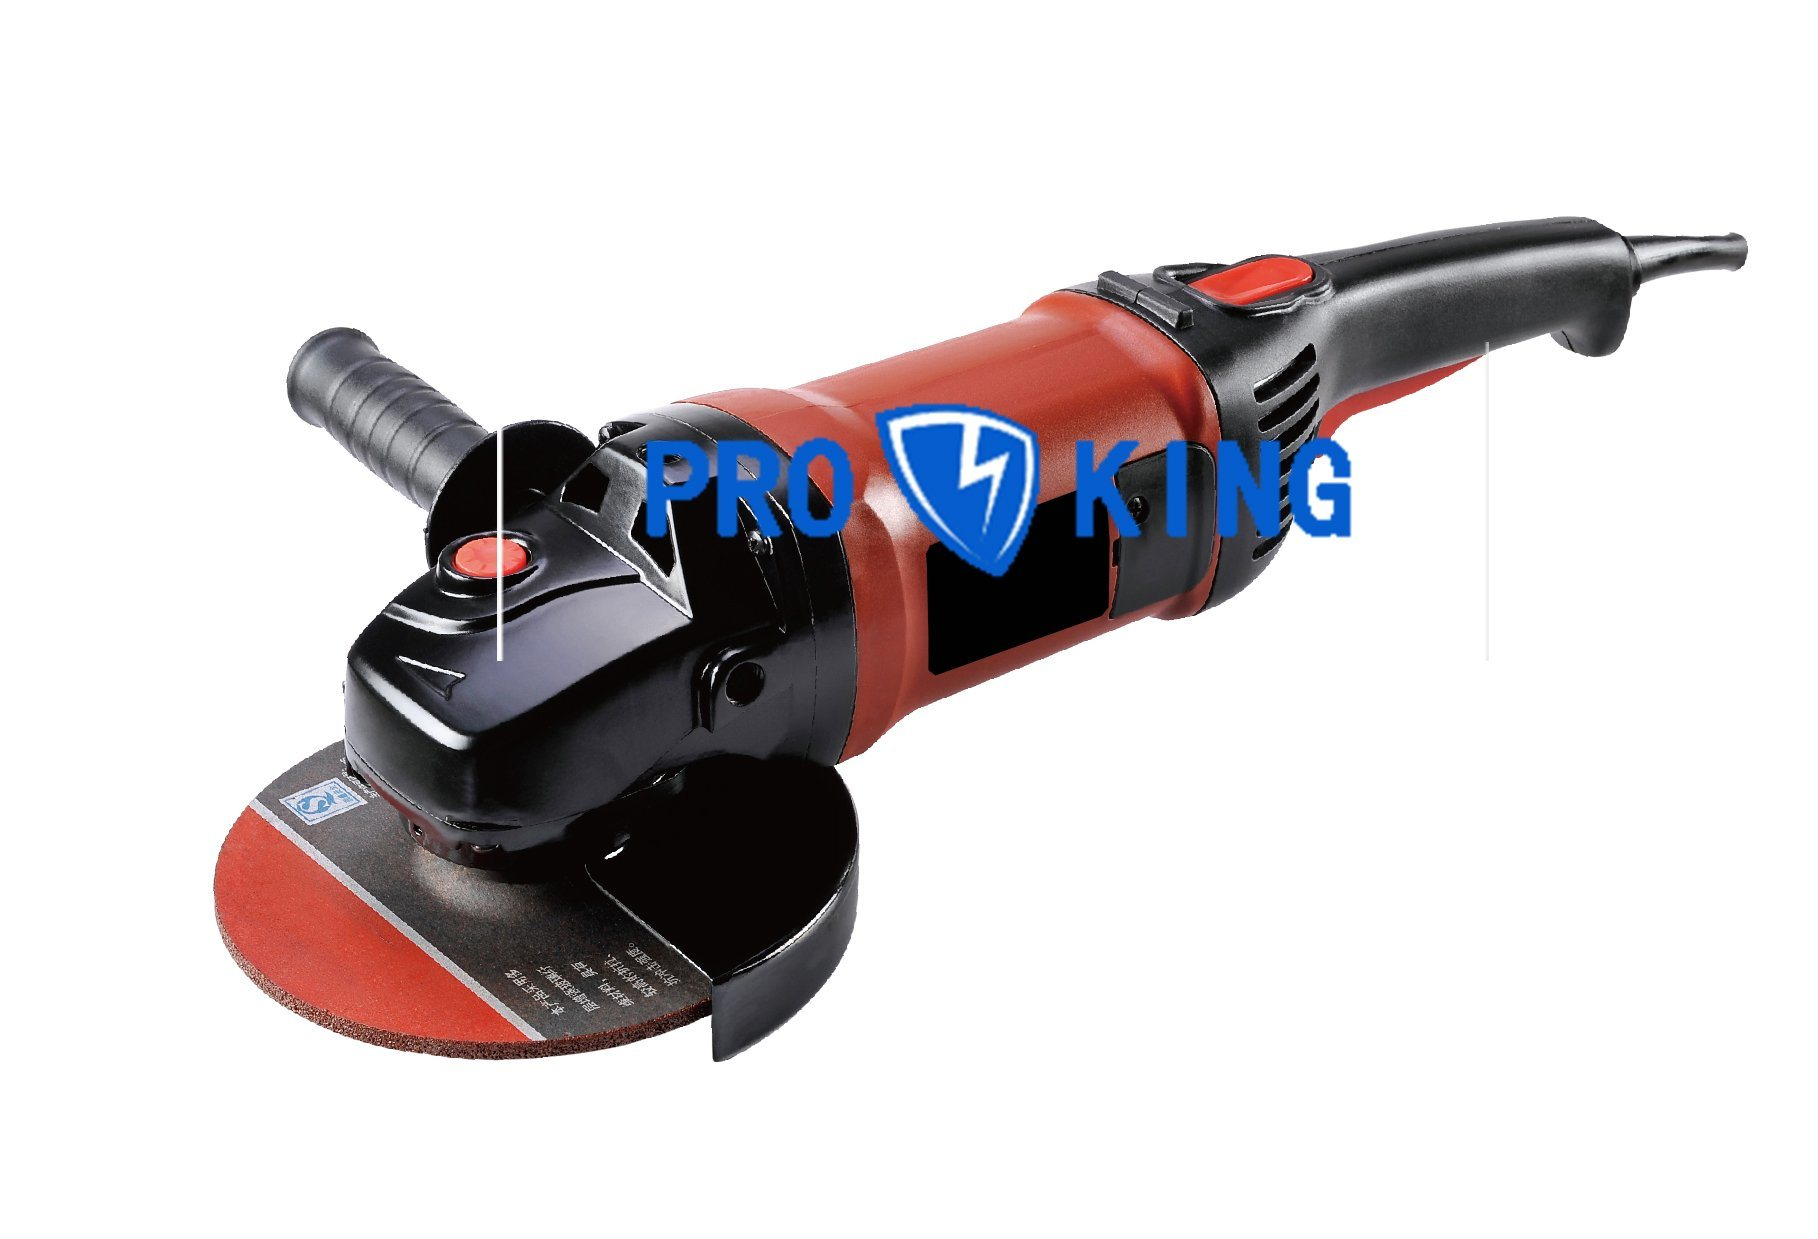 what can an angle grinder be used for